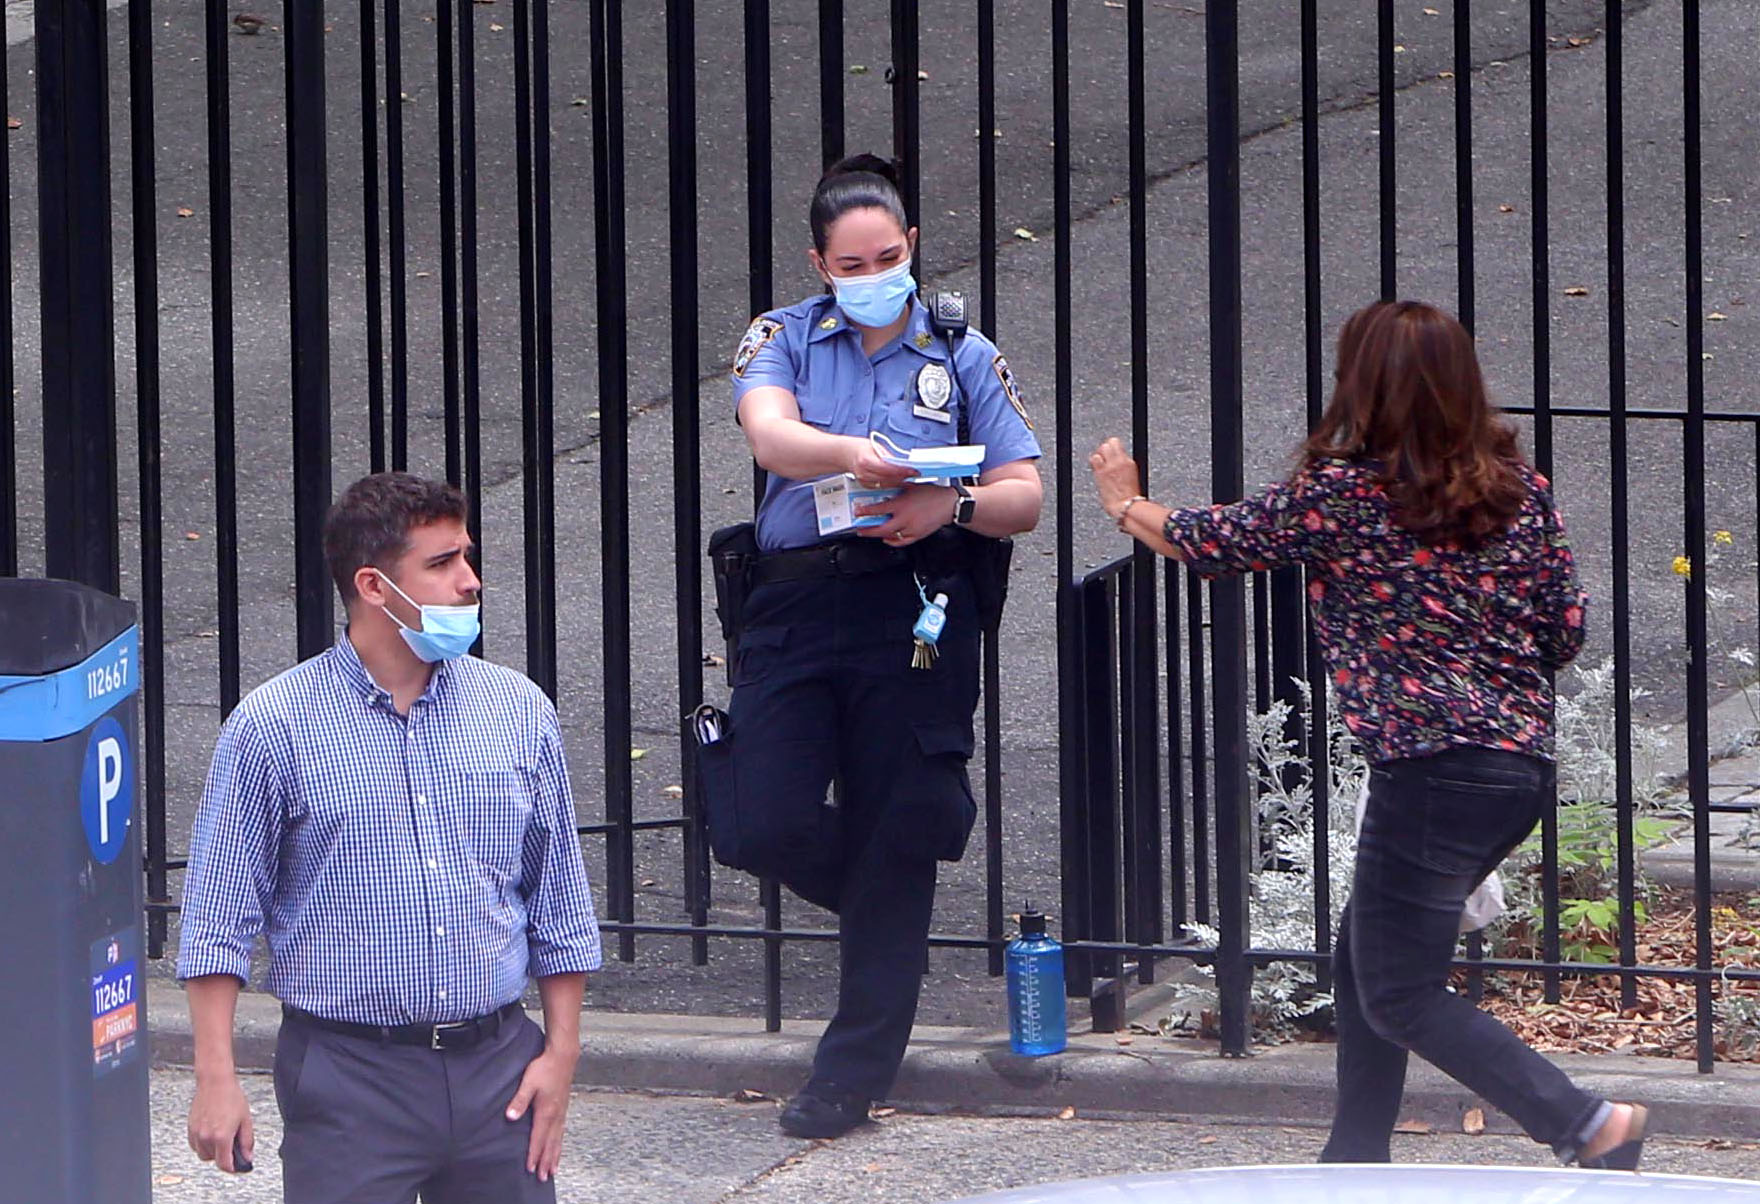 An NYPD officer in a mask hands out masks to people outside an Upper West Side Park. One man in the foreground has the mask under his nose.